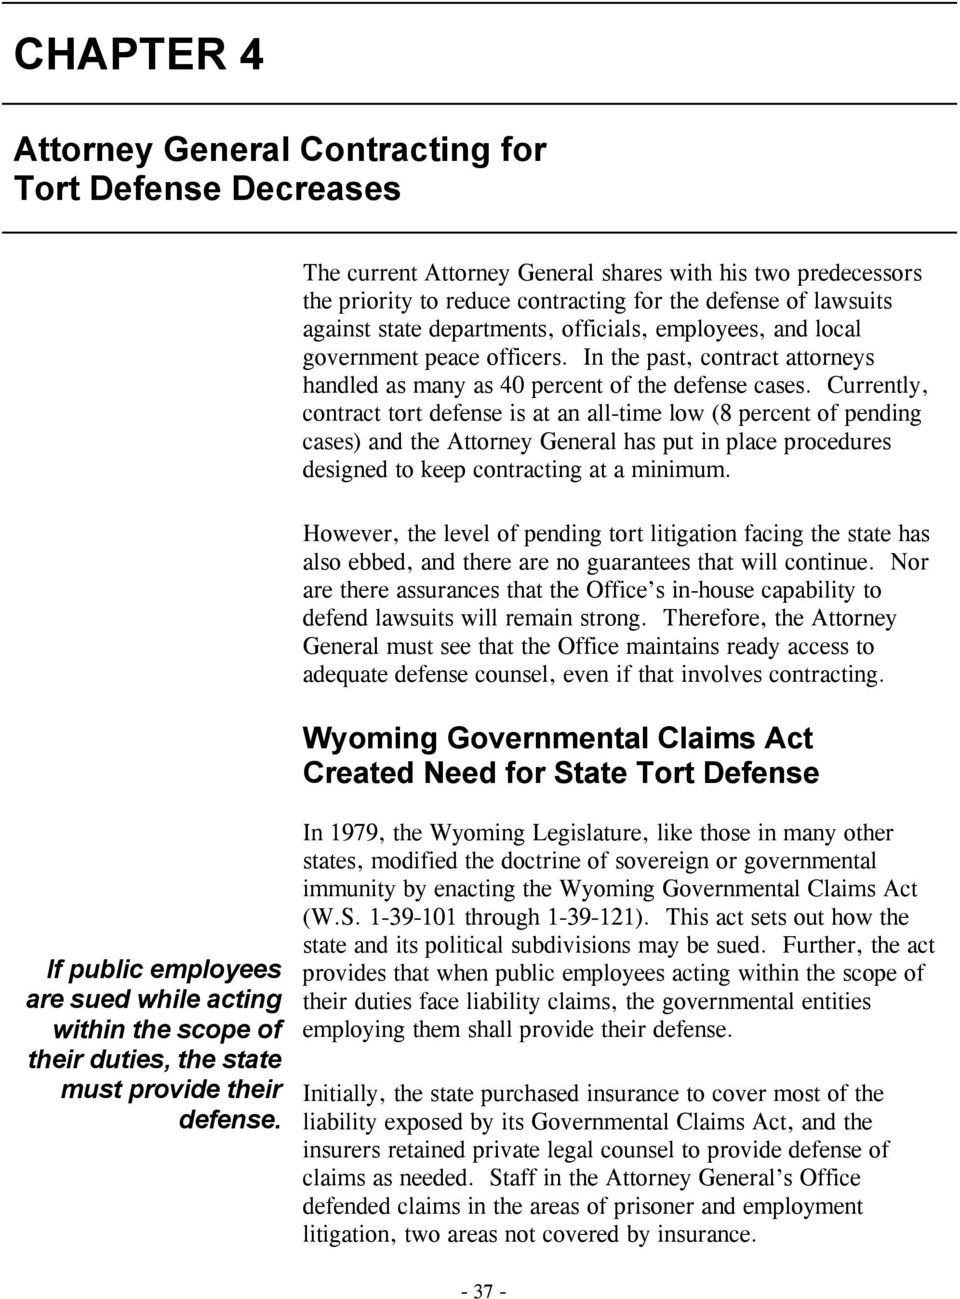 Currently, contract tort defense is at an all-time low (8 percent of pending cases) and the Attorney General has put in place procedures designed to keep contracting at a minimum.